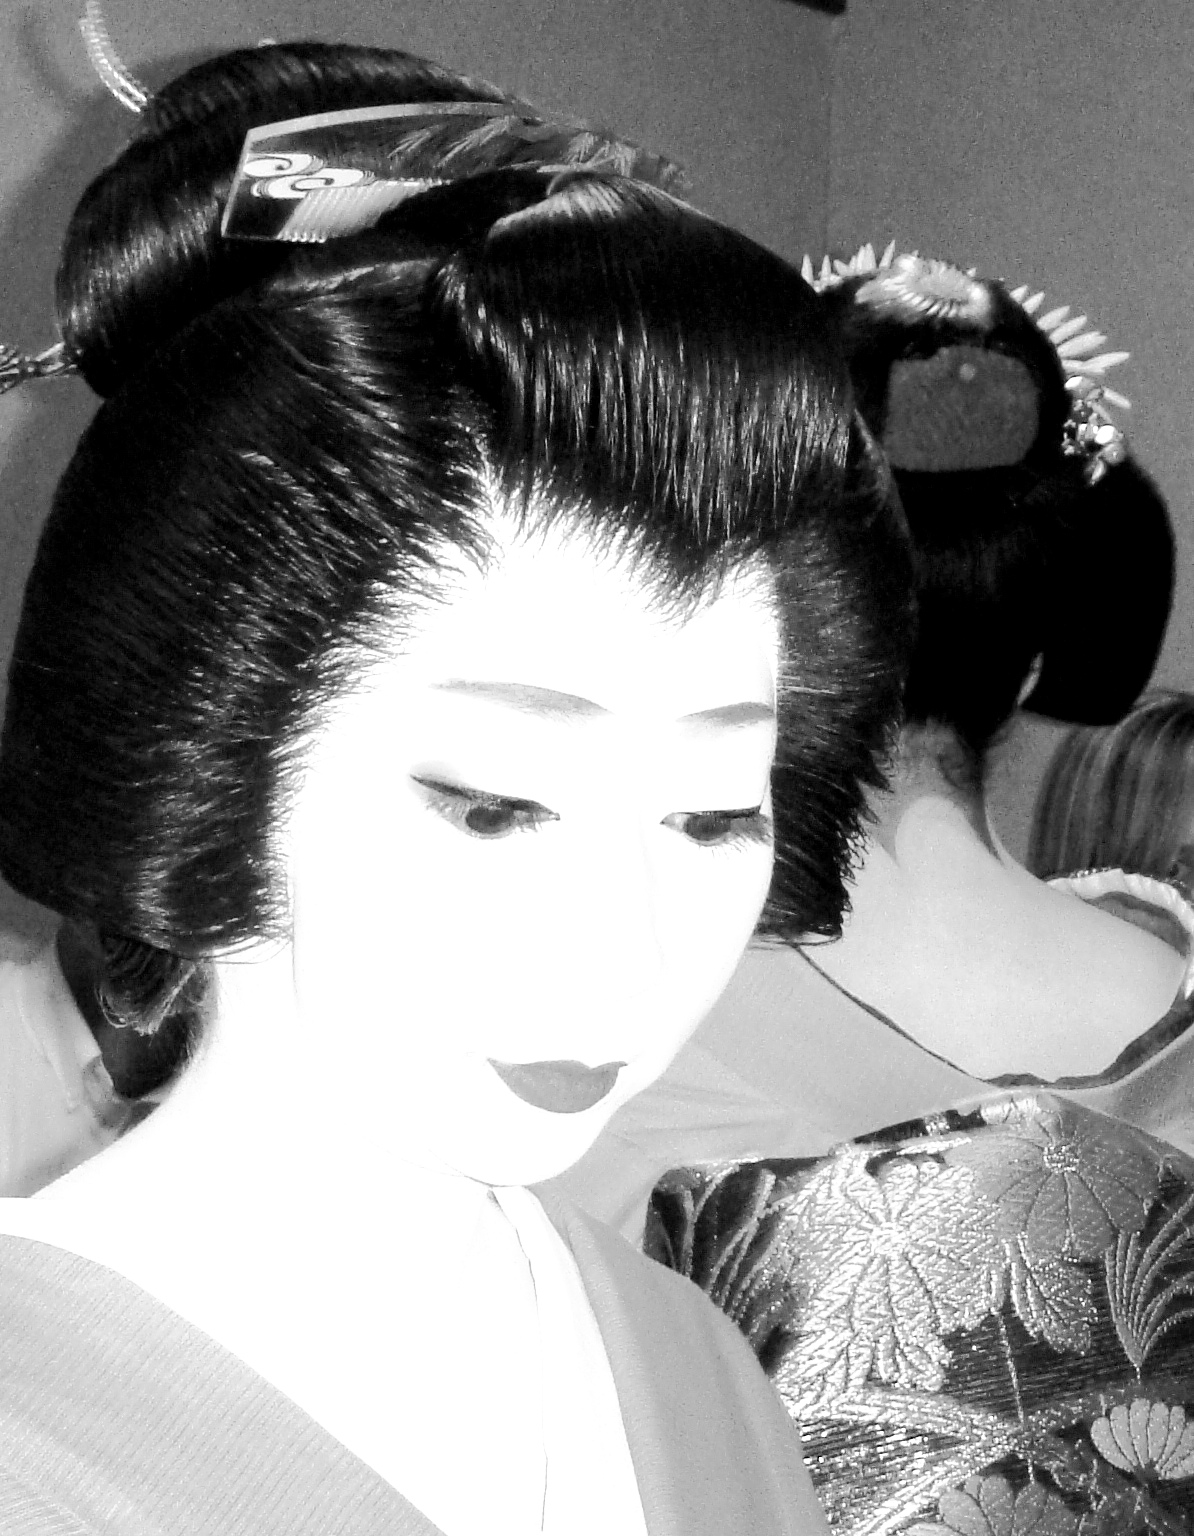 MY FAVORITE GEIKO IN KYOTO